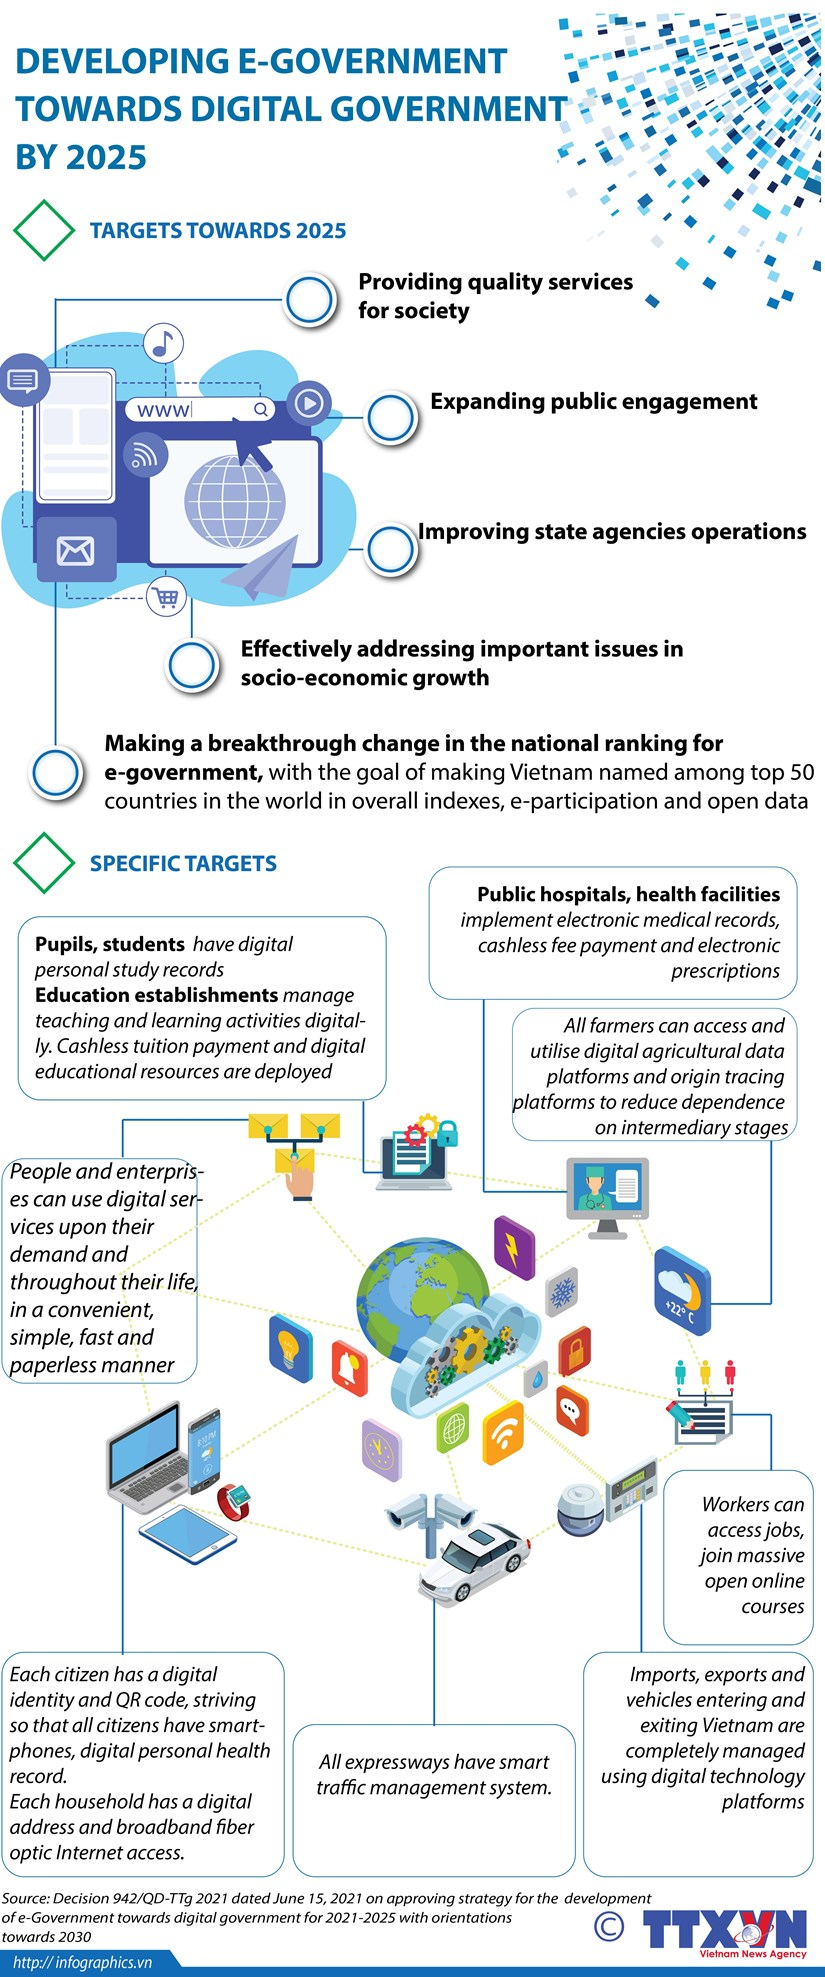 Developing e-government towards digital government by 2025 hinh anh 1